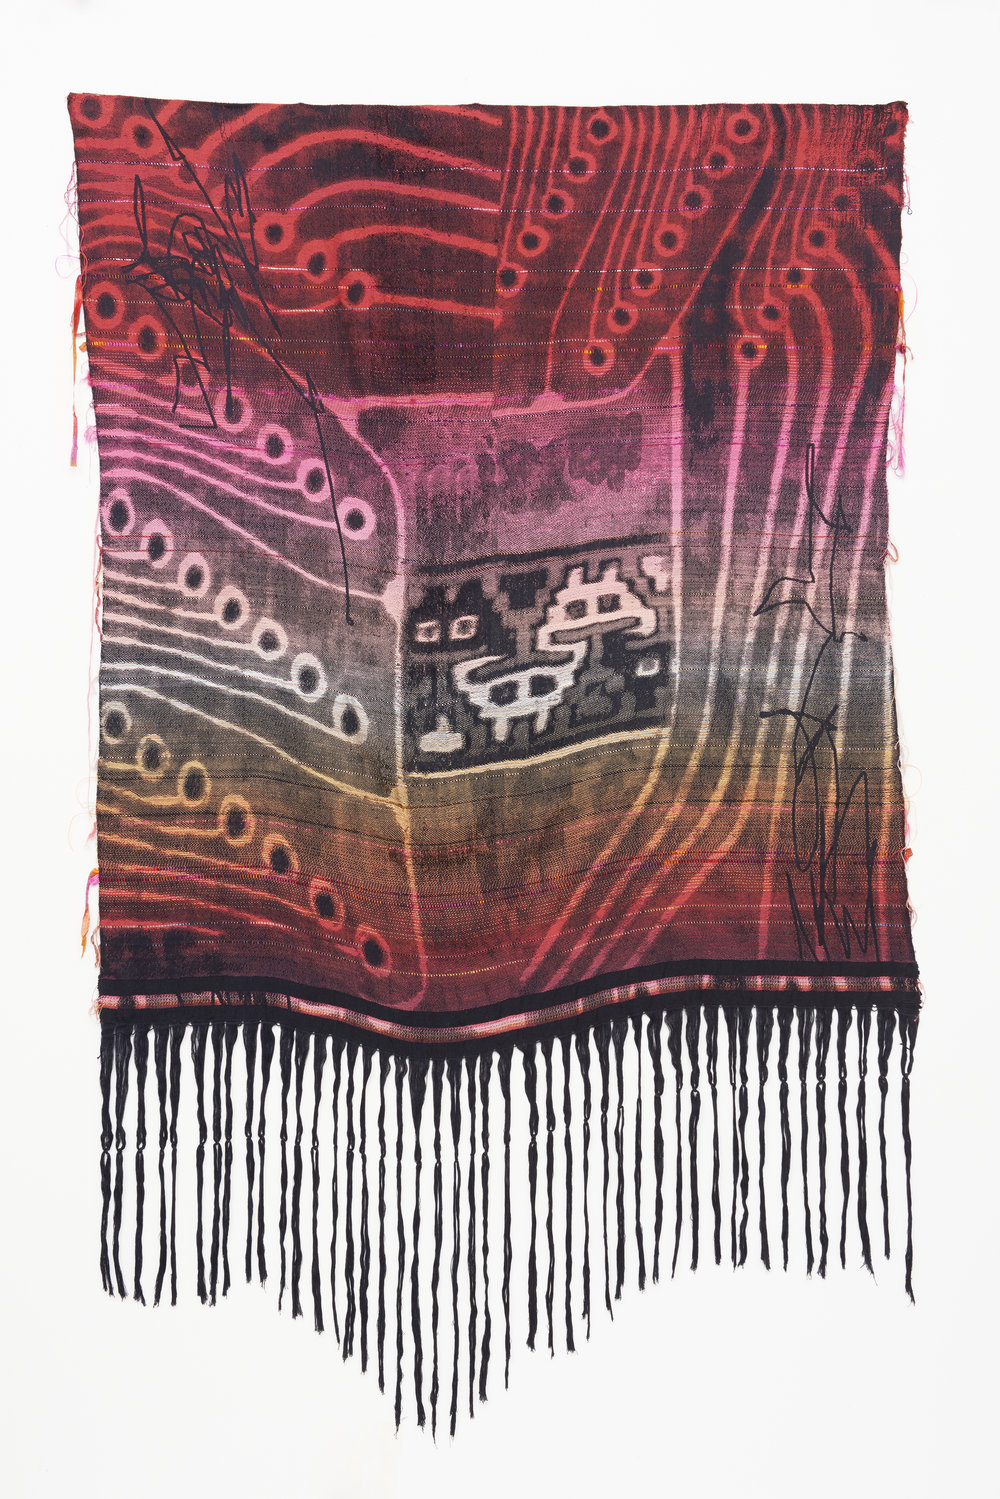 Robin Kang  Encrypted , 2017 Hand Jacquard woven cotte, tencel, and synthetic fibers 87 x 53 in